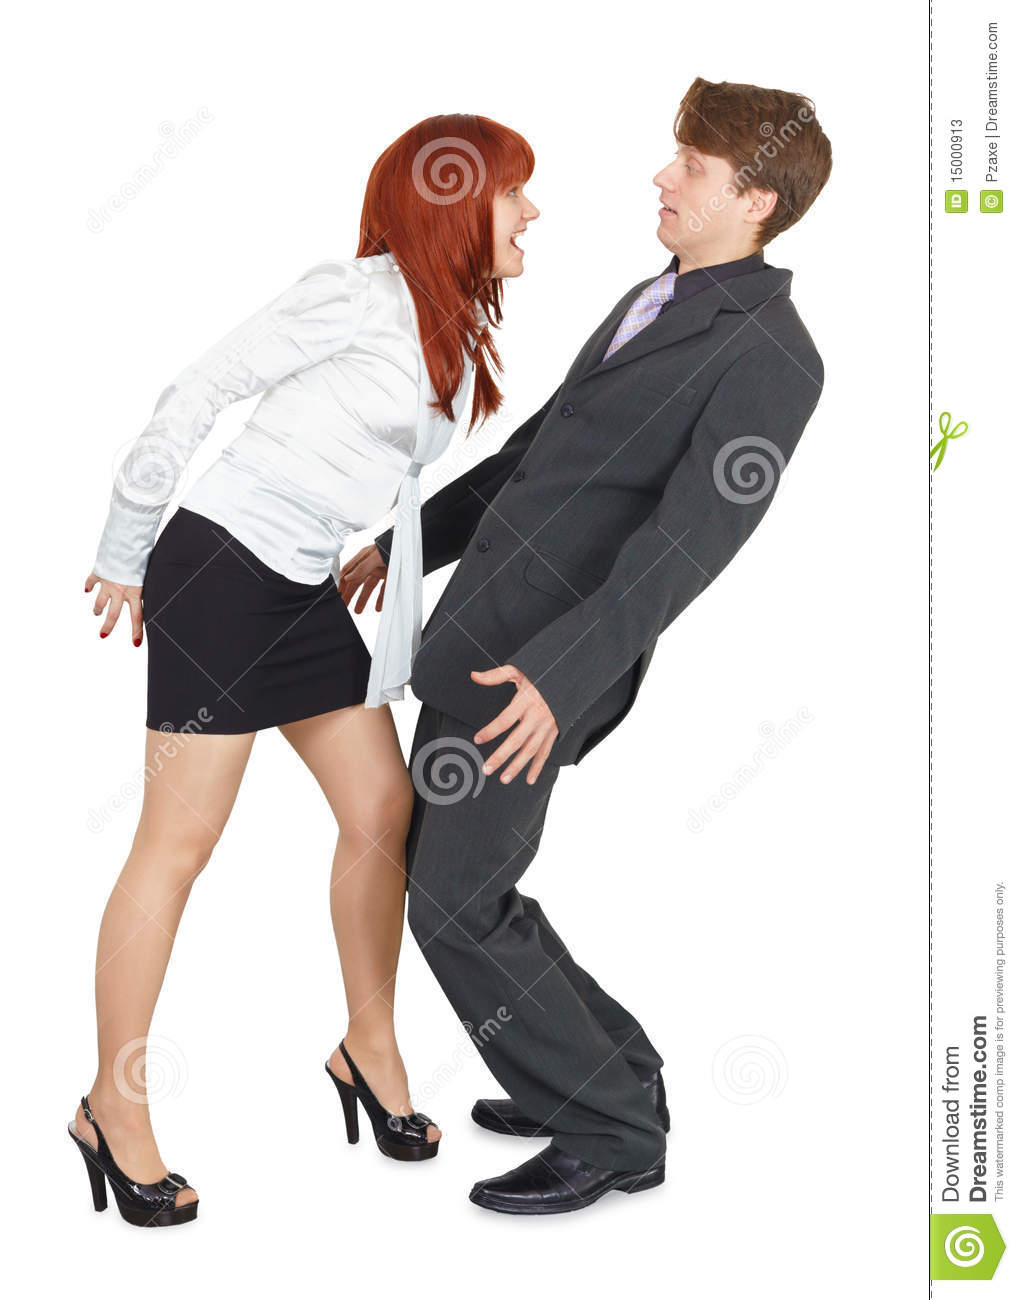 Angry Woman Yelling At Young Man Stock Photos - Image ...